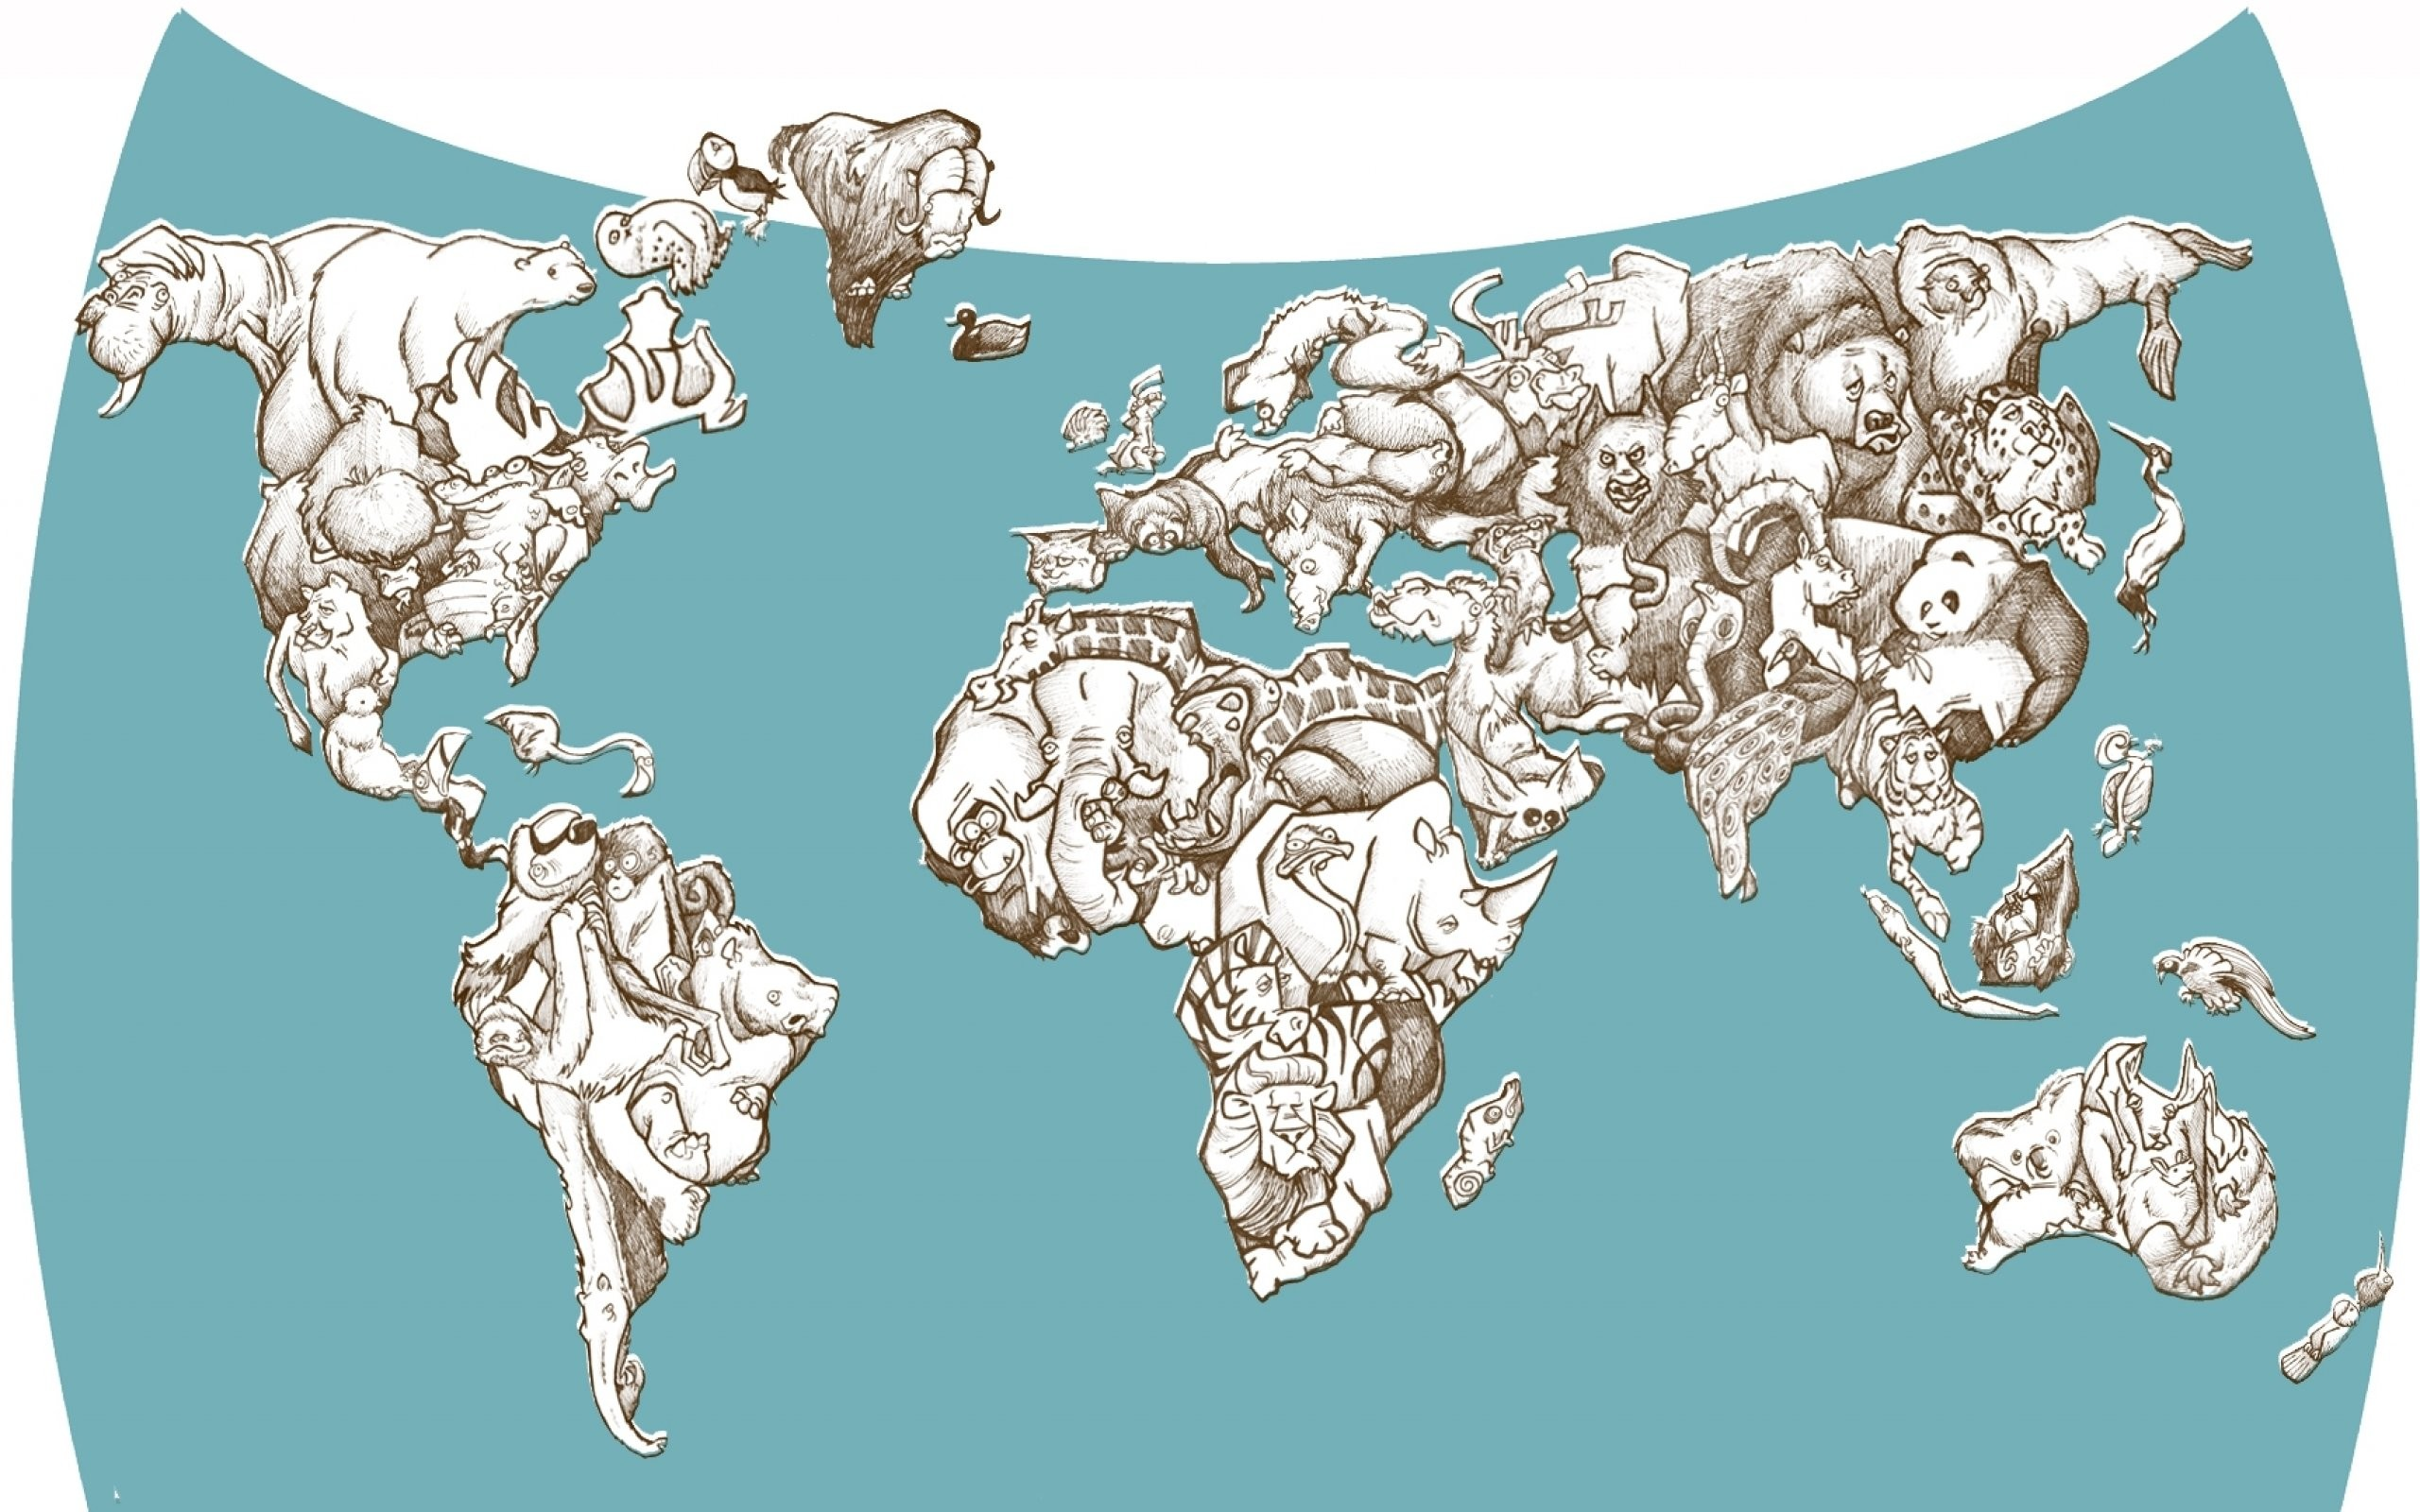 World map desktop wallpaper 54 images 1920x1080 world map android 640 gumiabroncs Gallery